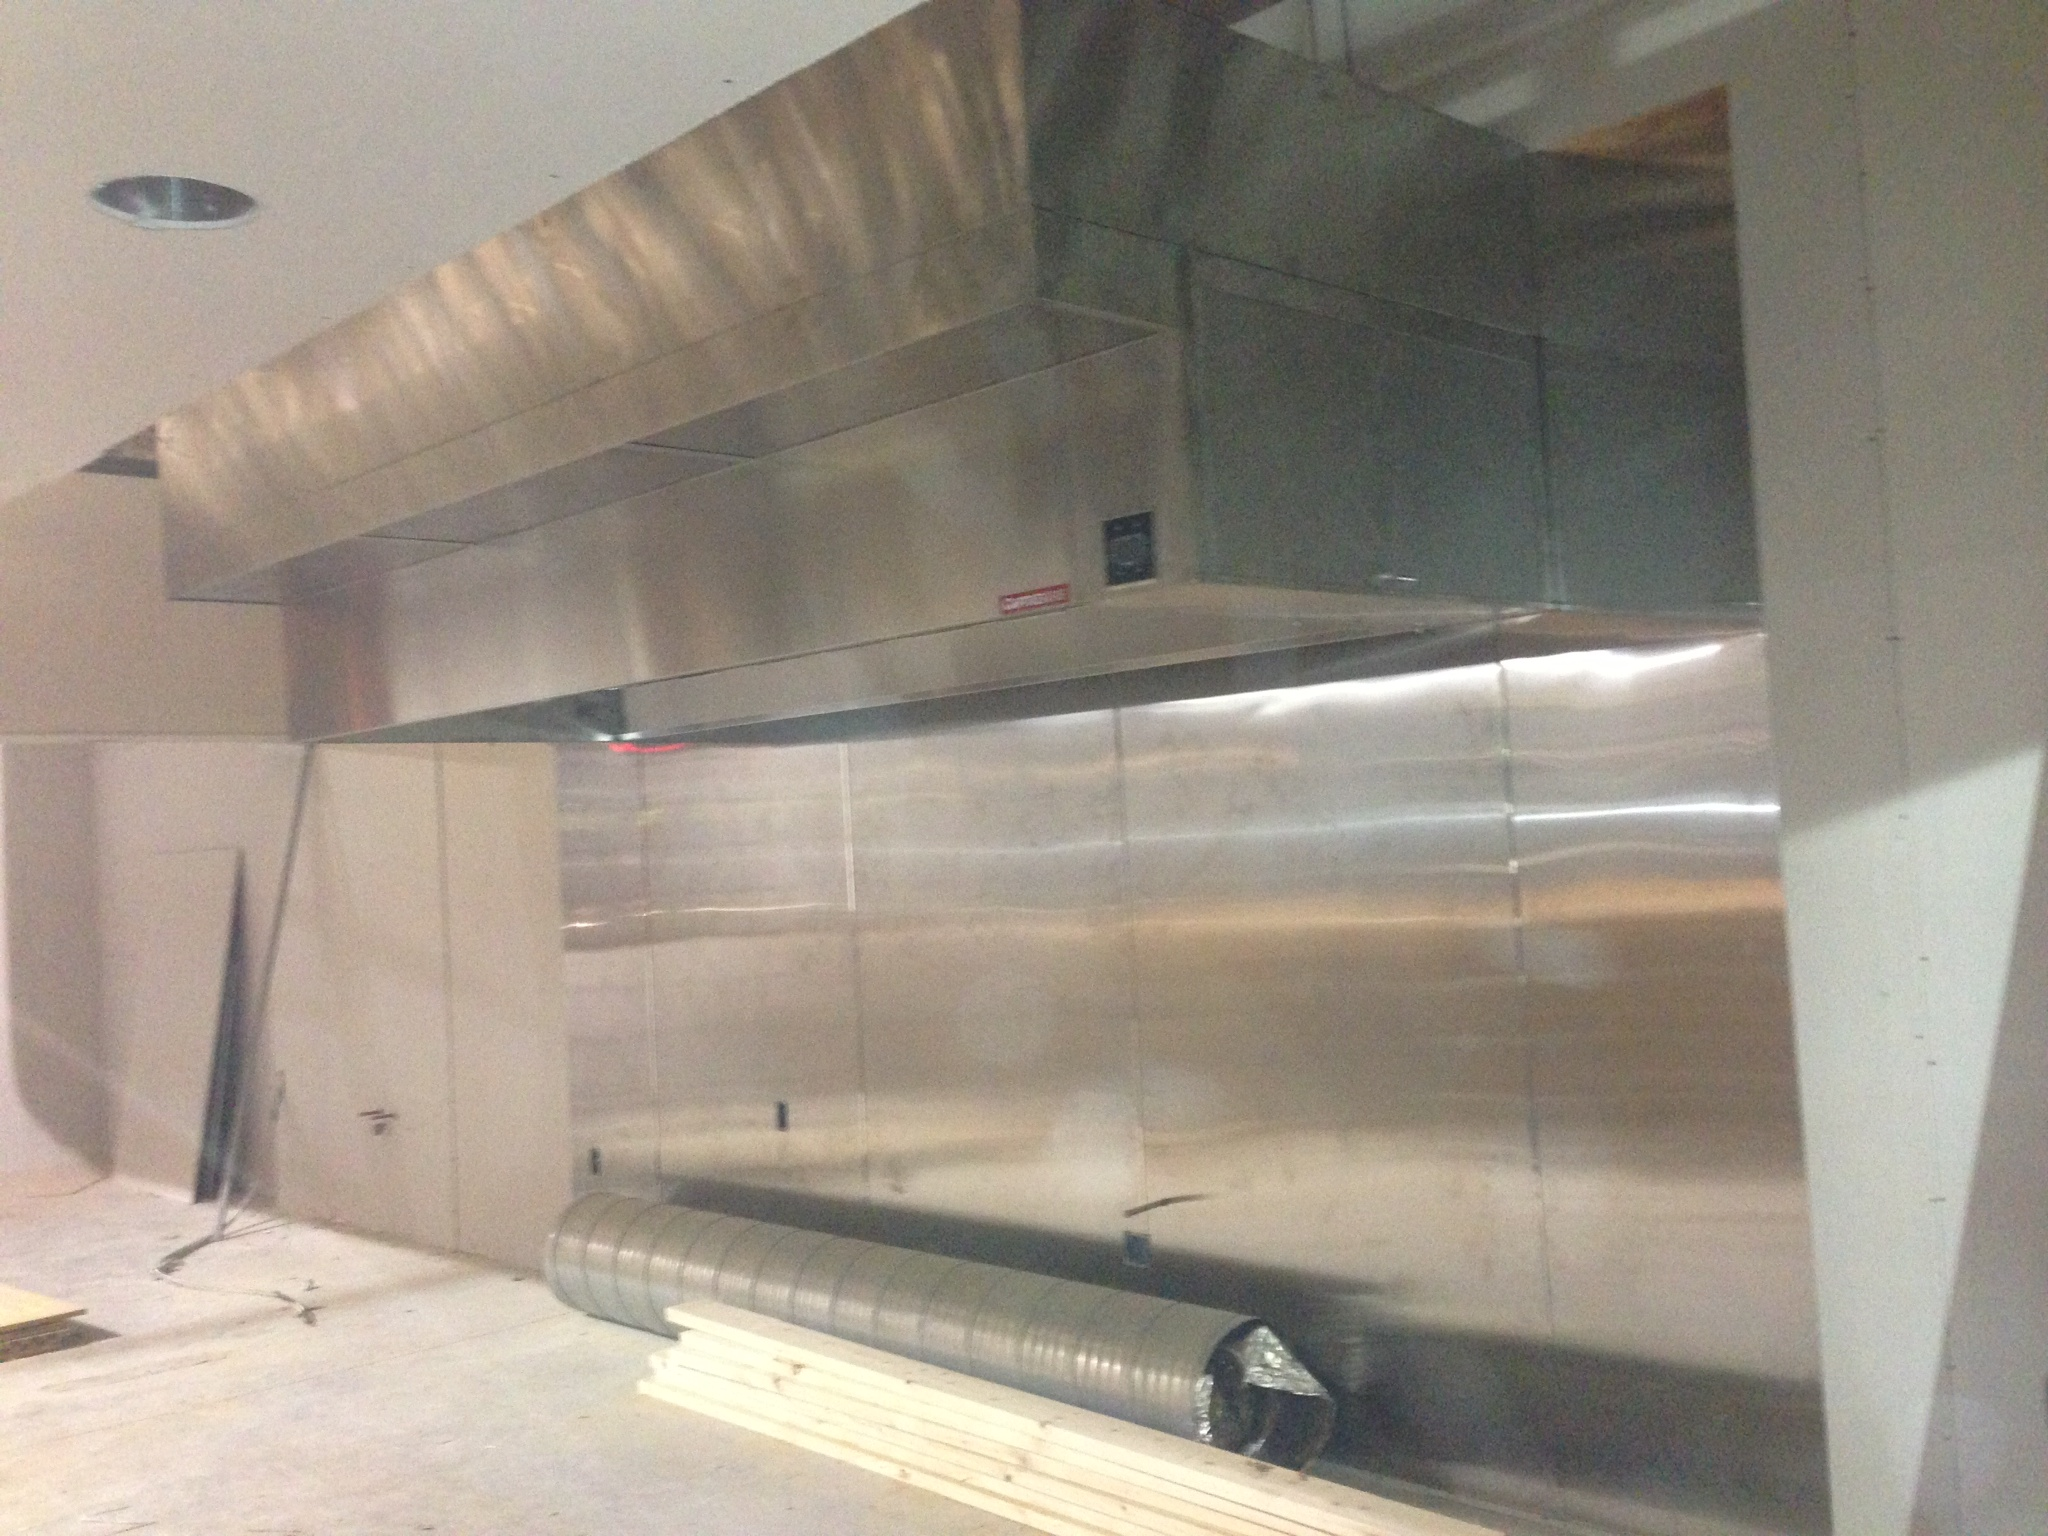 commercial kitchen hood installation counter stools for heating and air conditioning at moe 39s grill clay ny